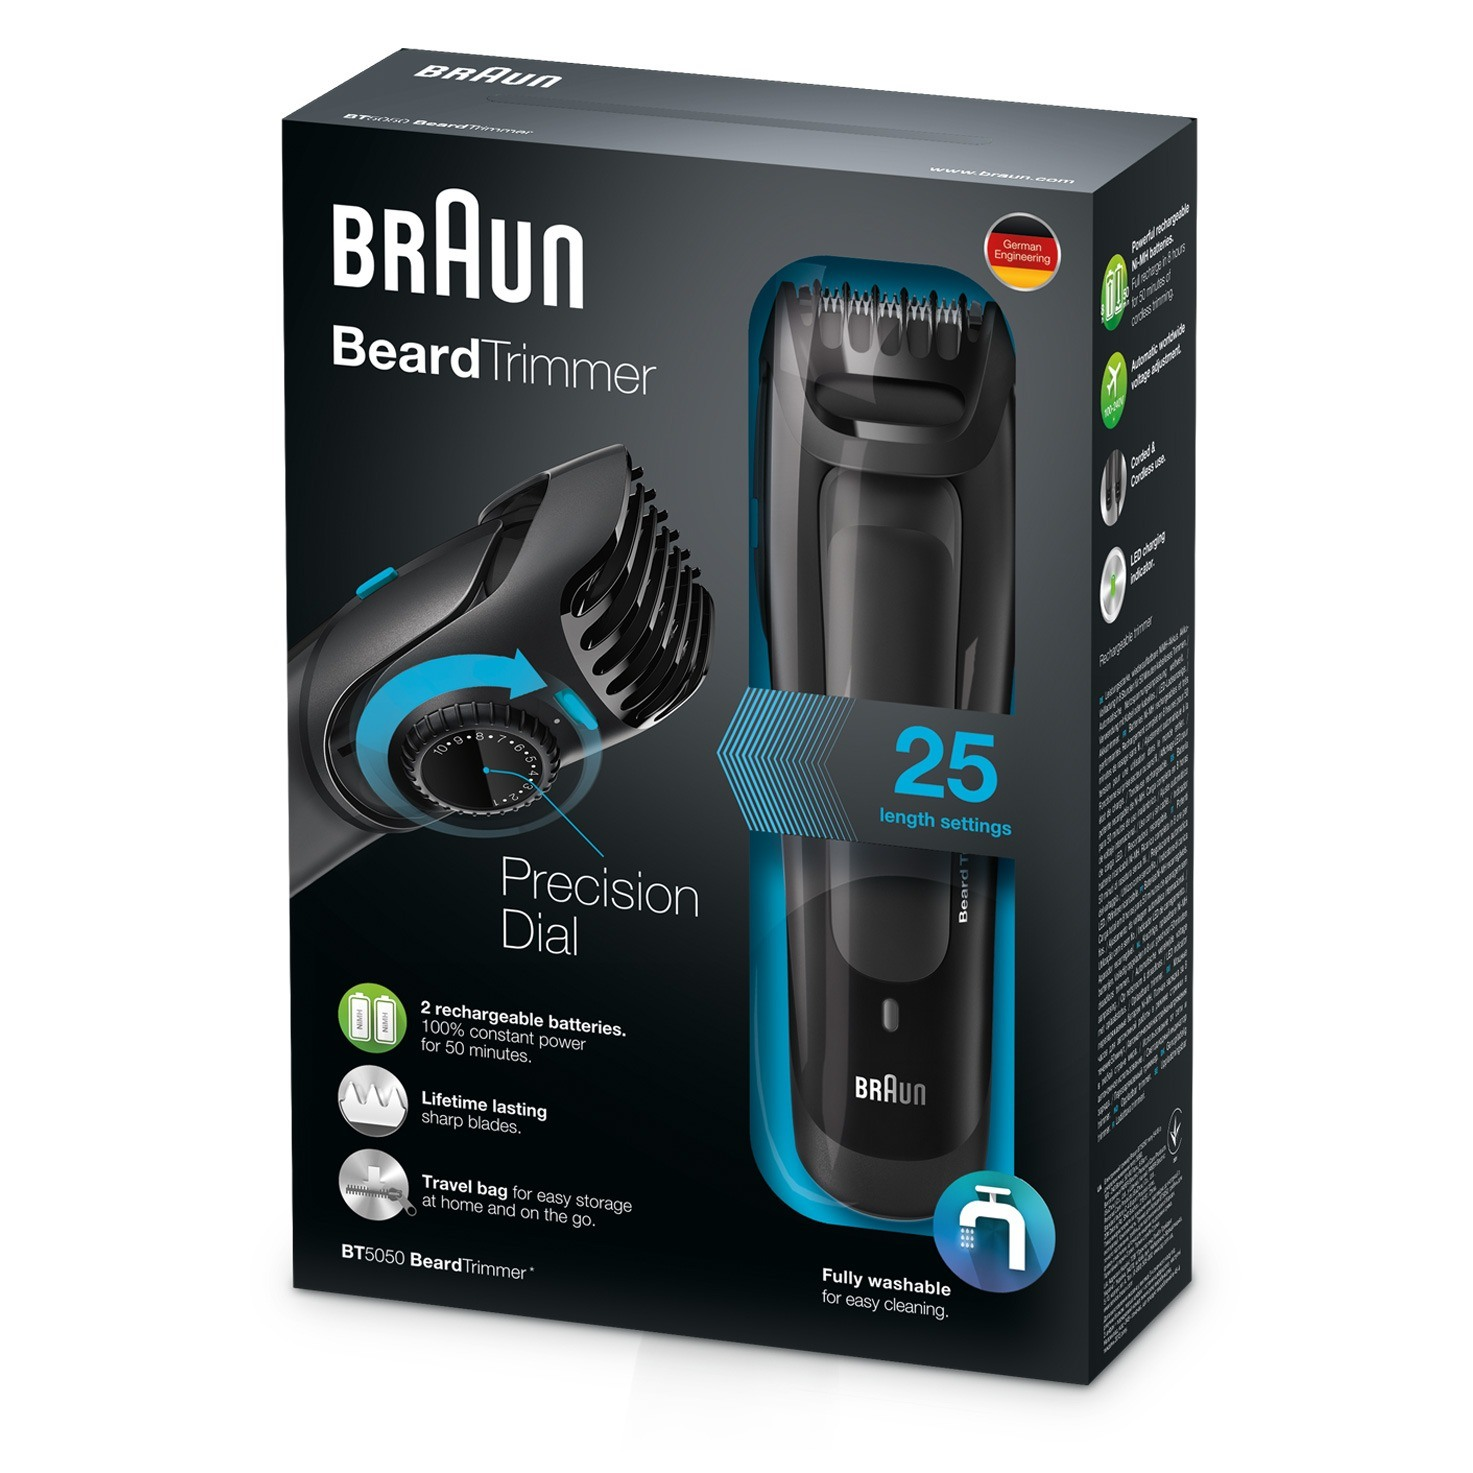 Braun Beard Trimmer BT5010 - packaging